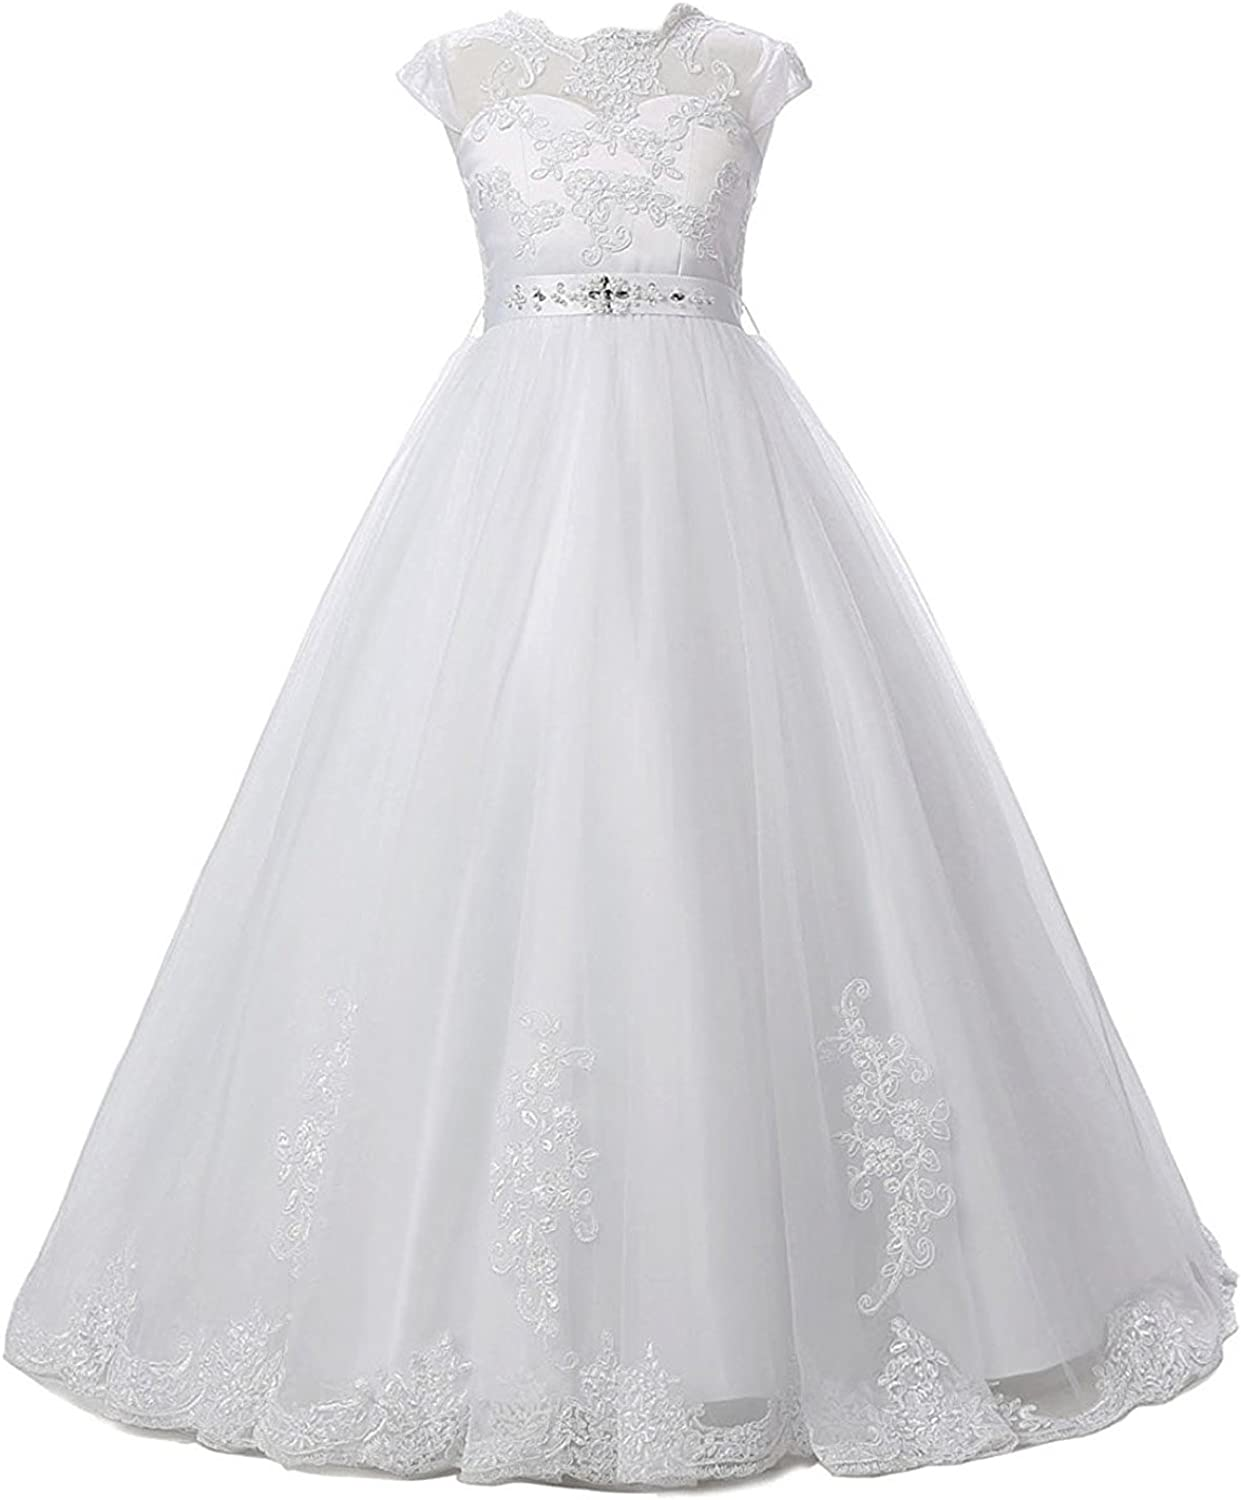 Sarahbridal Lace Tulle Beaded Princess Party Dress Flower Girls Wedding Dresses with Sleeve